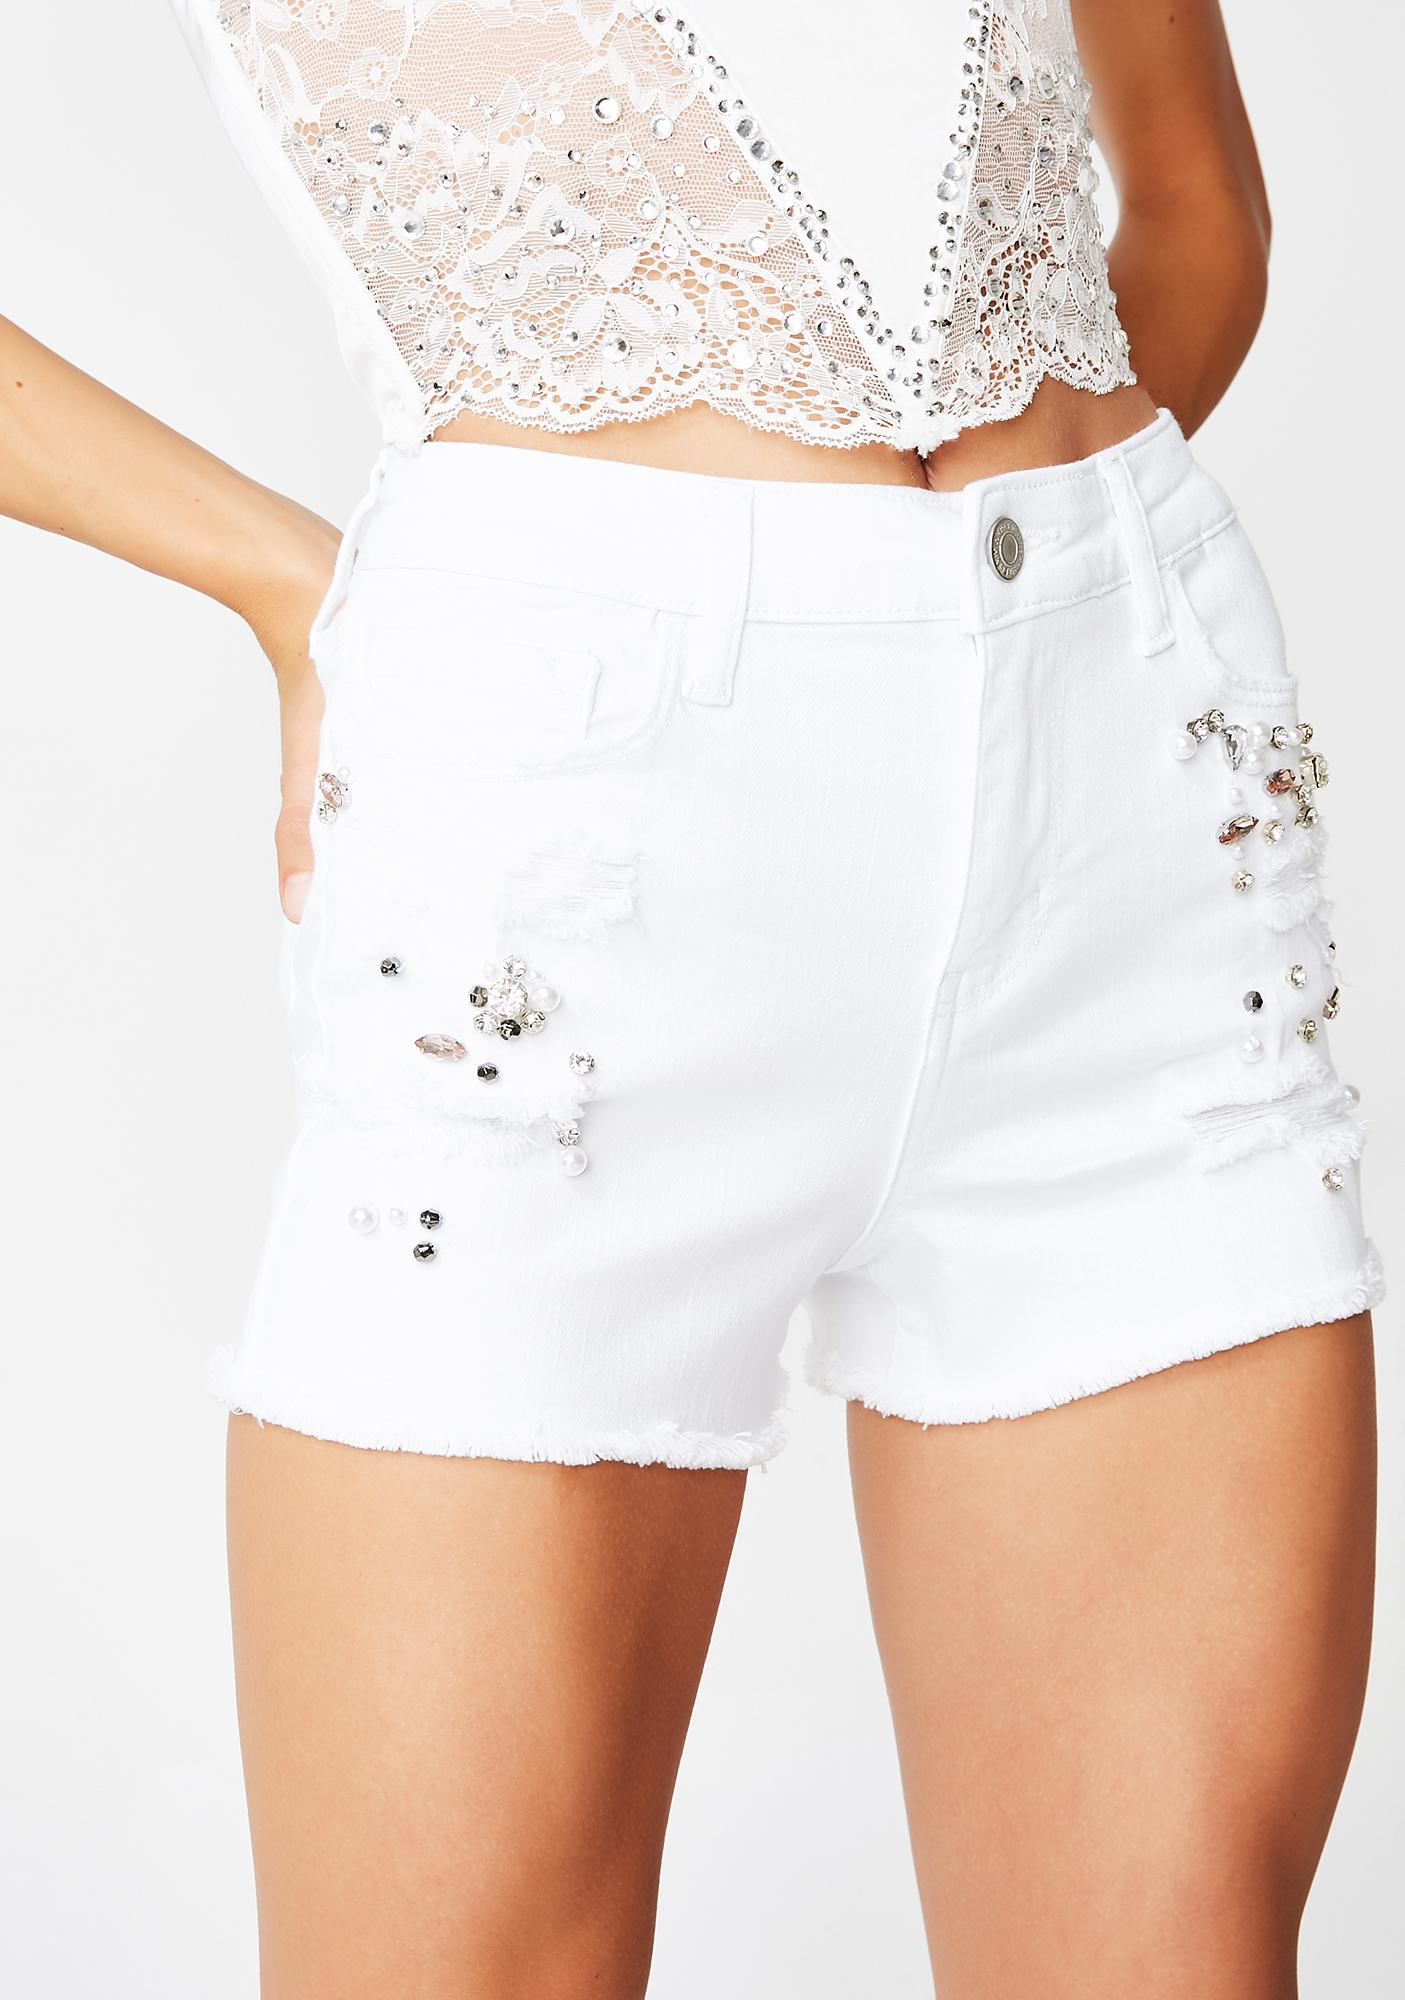 JUICY COUTURE Bejeweled High Rise Shorts